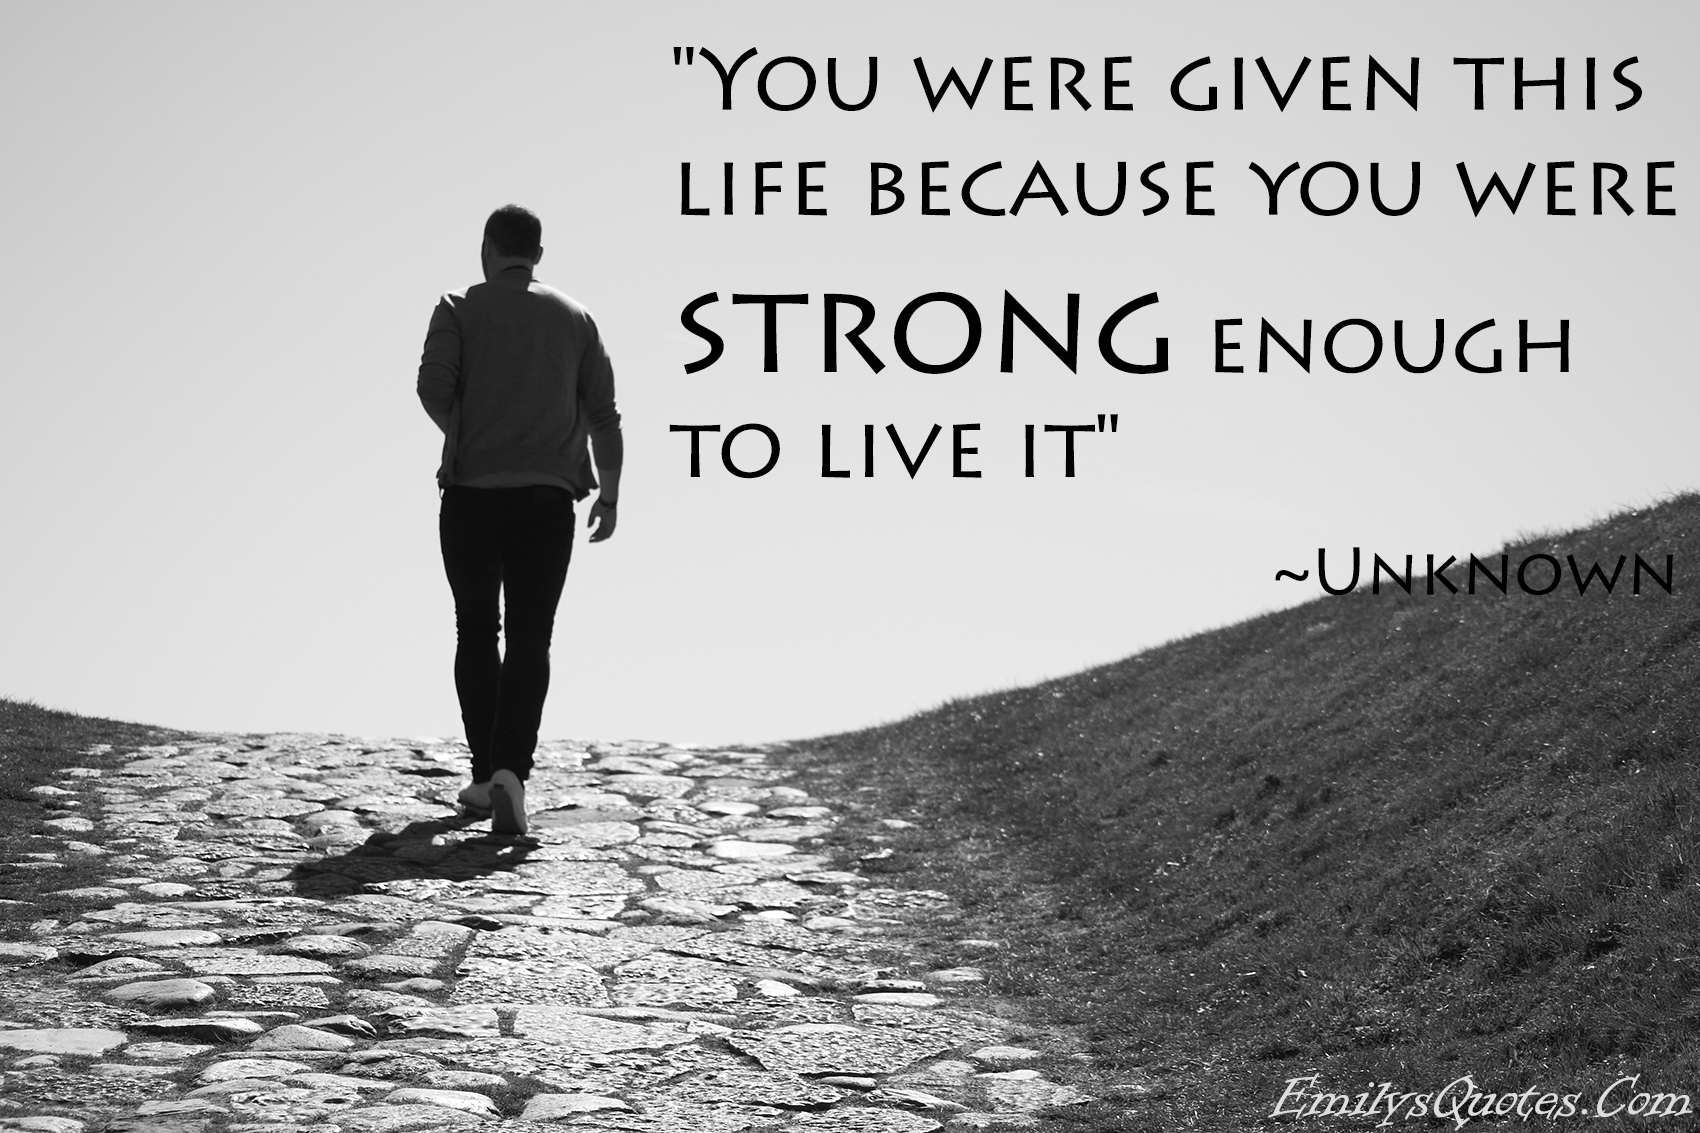 EmilysQuotes.Com - life, strength, unknown, Inspirational